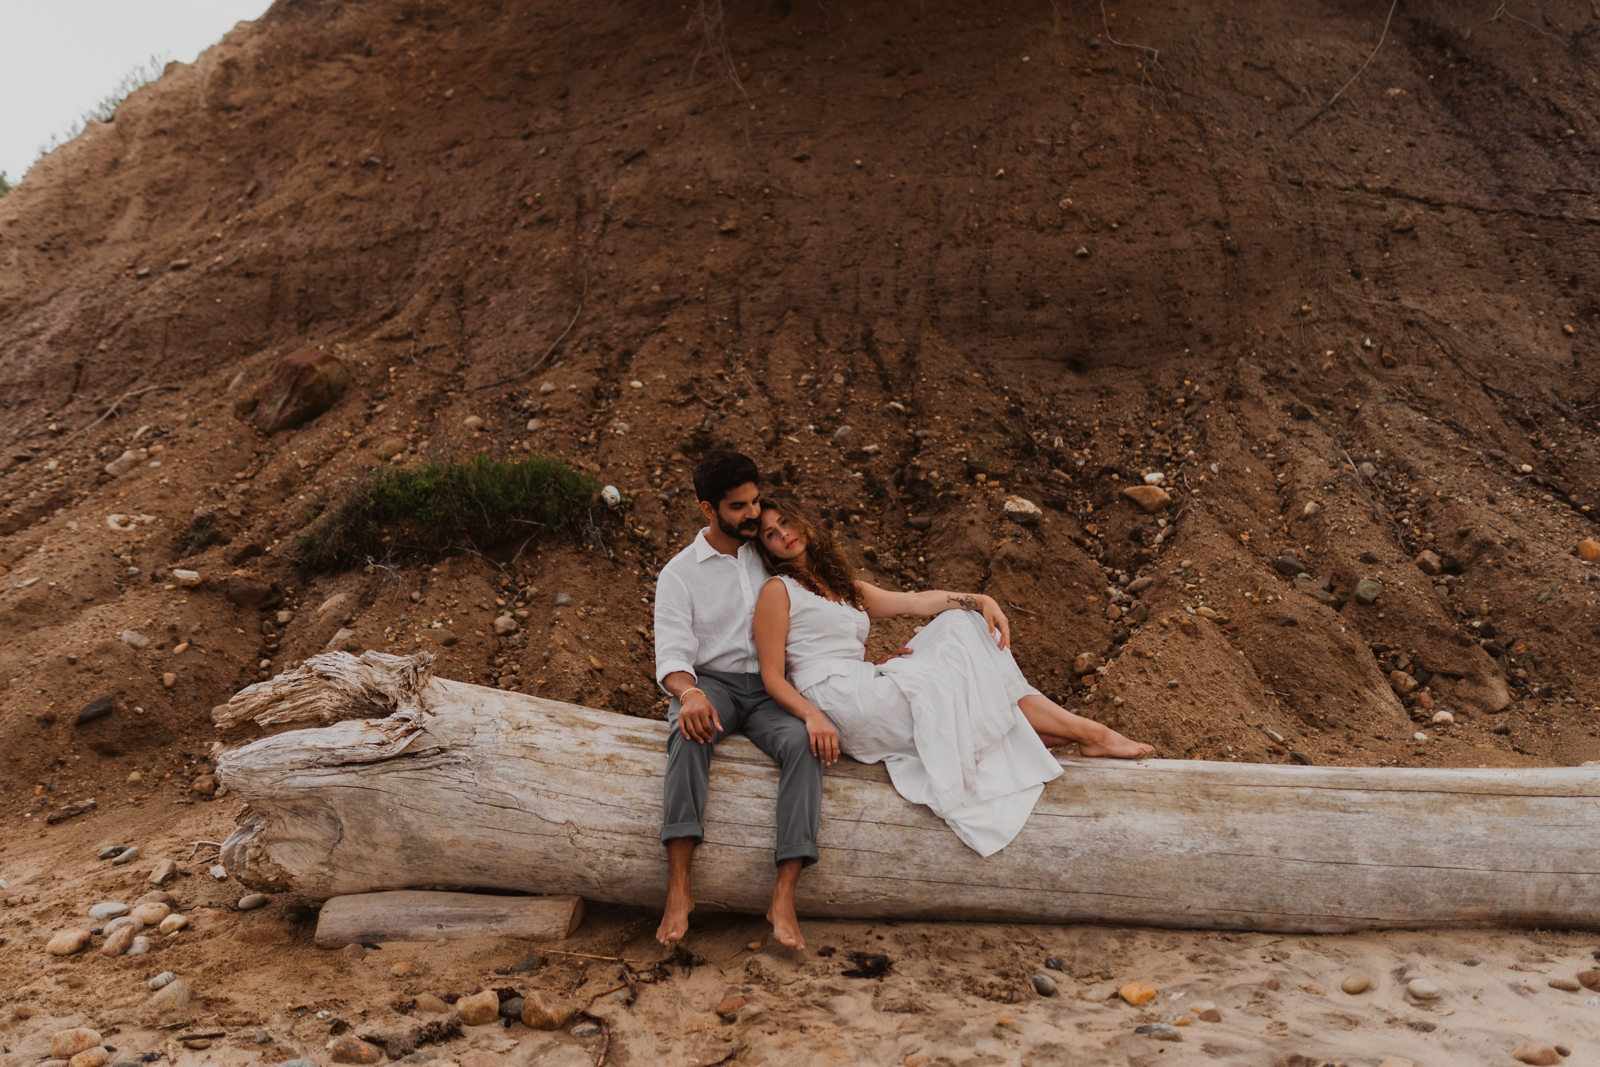 JJP_Nikki & Bud_Shadmoor_Montauk_NY_Cliff Engagement Session160.jpg_blog.jpg